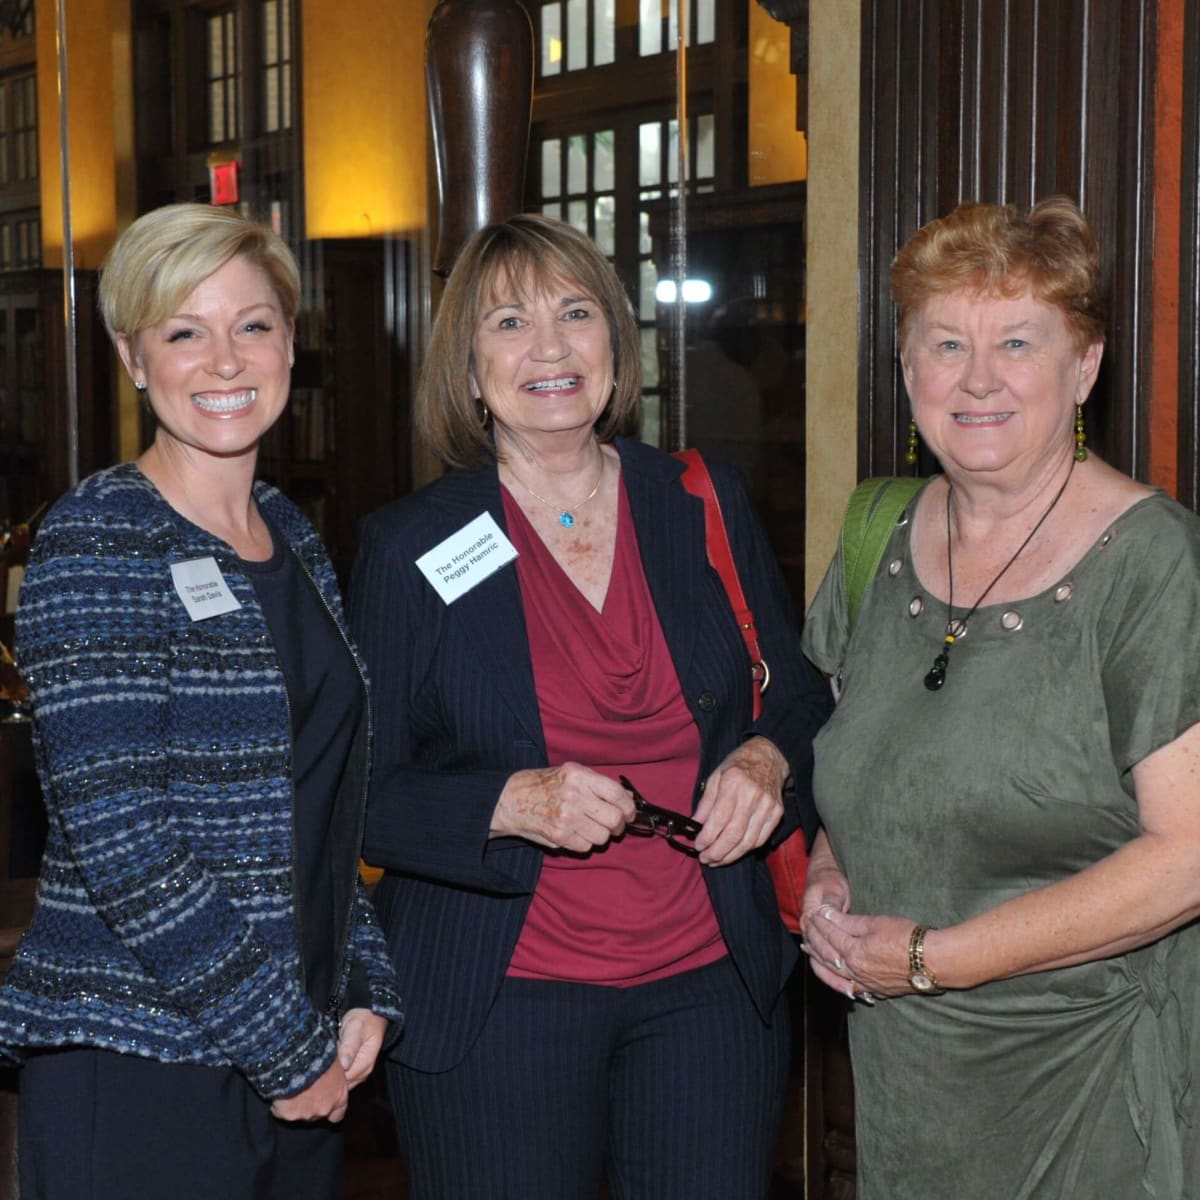 Sarah Davis, Peggy Hamric, Beverly Kaufman at Hobby Center for Public Policy lunch